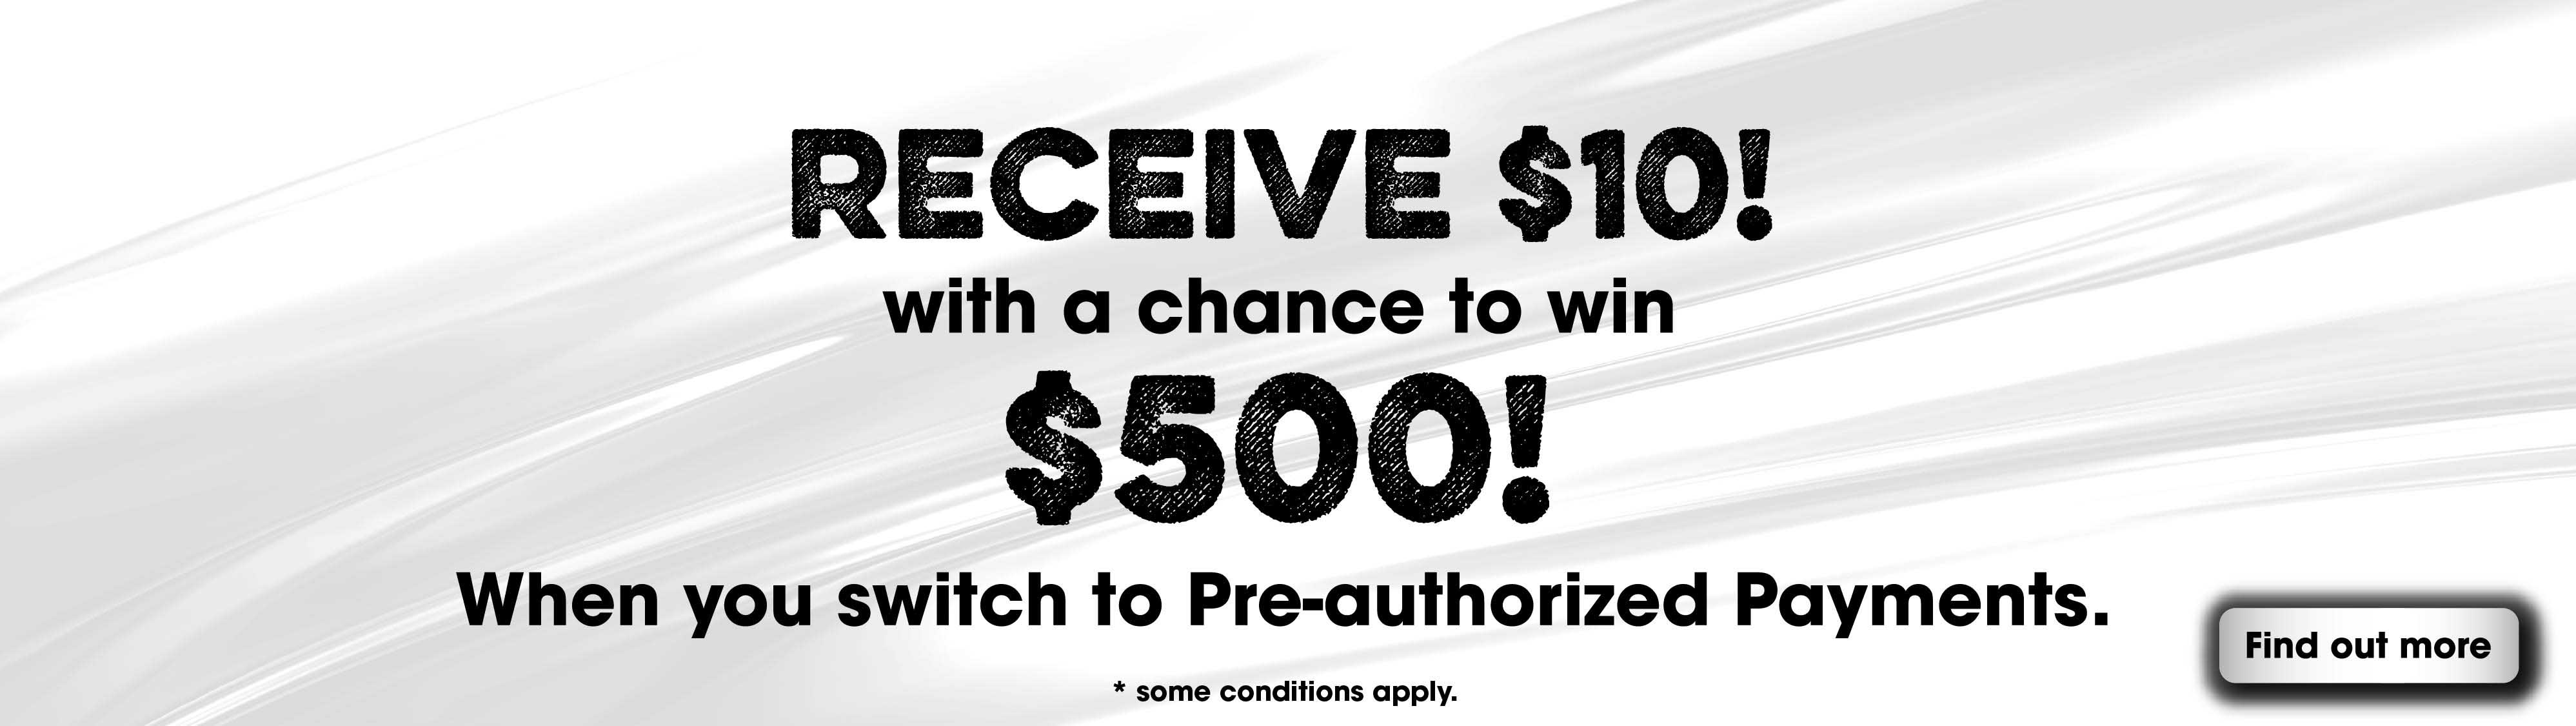 Receive $10 when you sign up for Pre-authorized Statemetns.